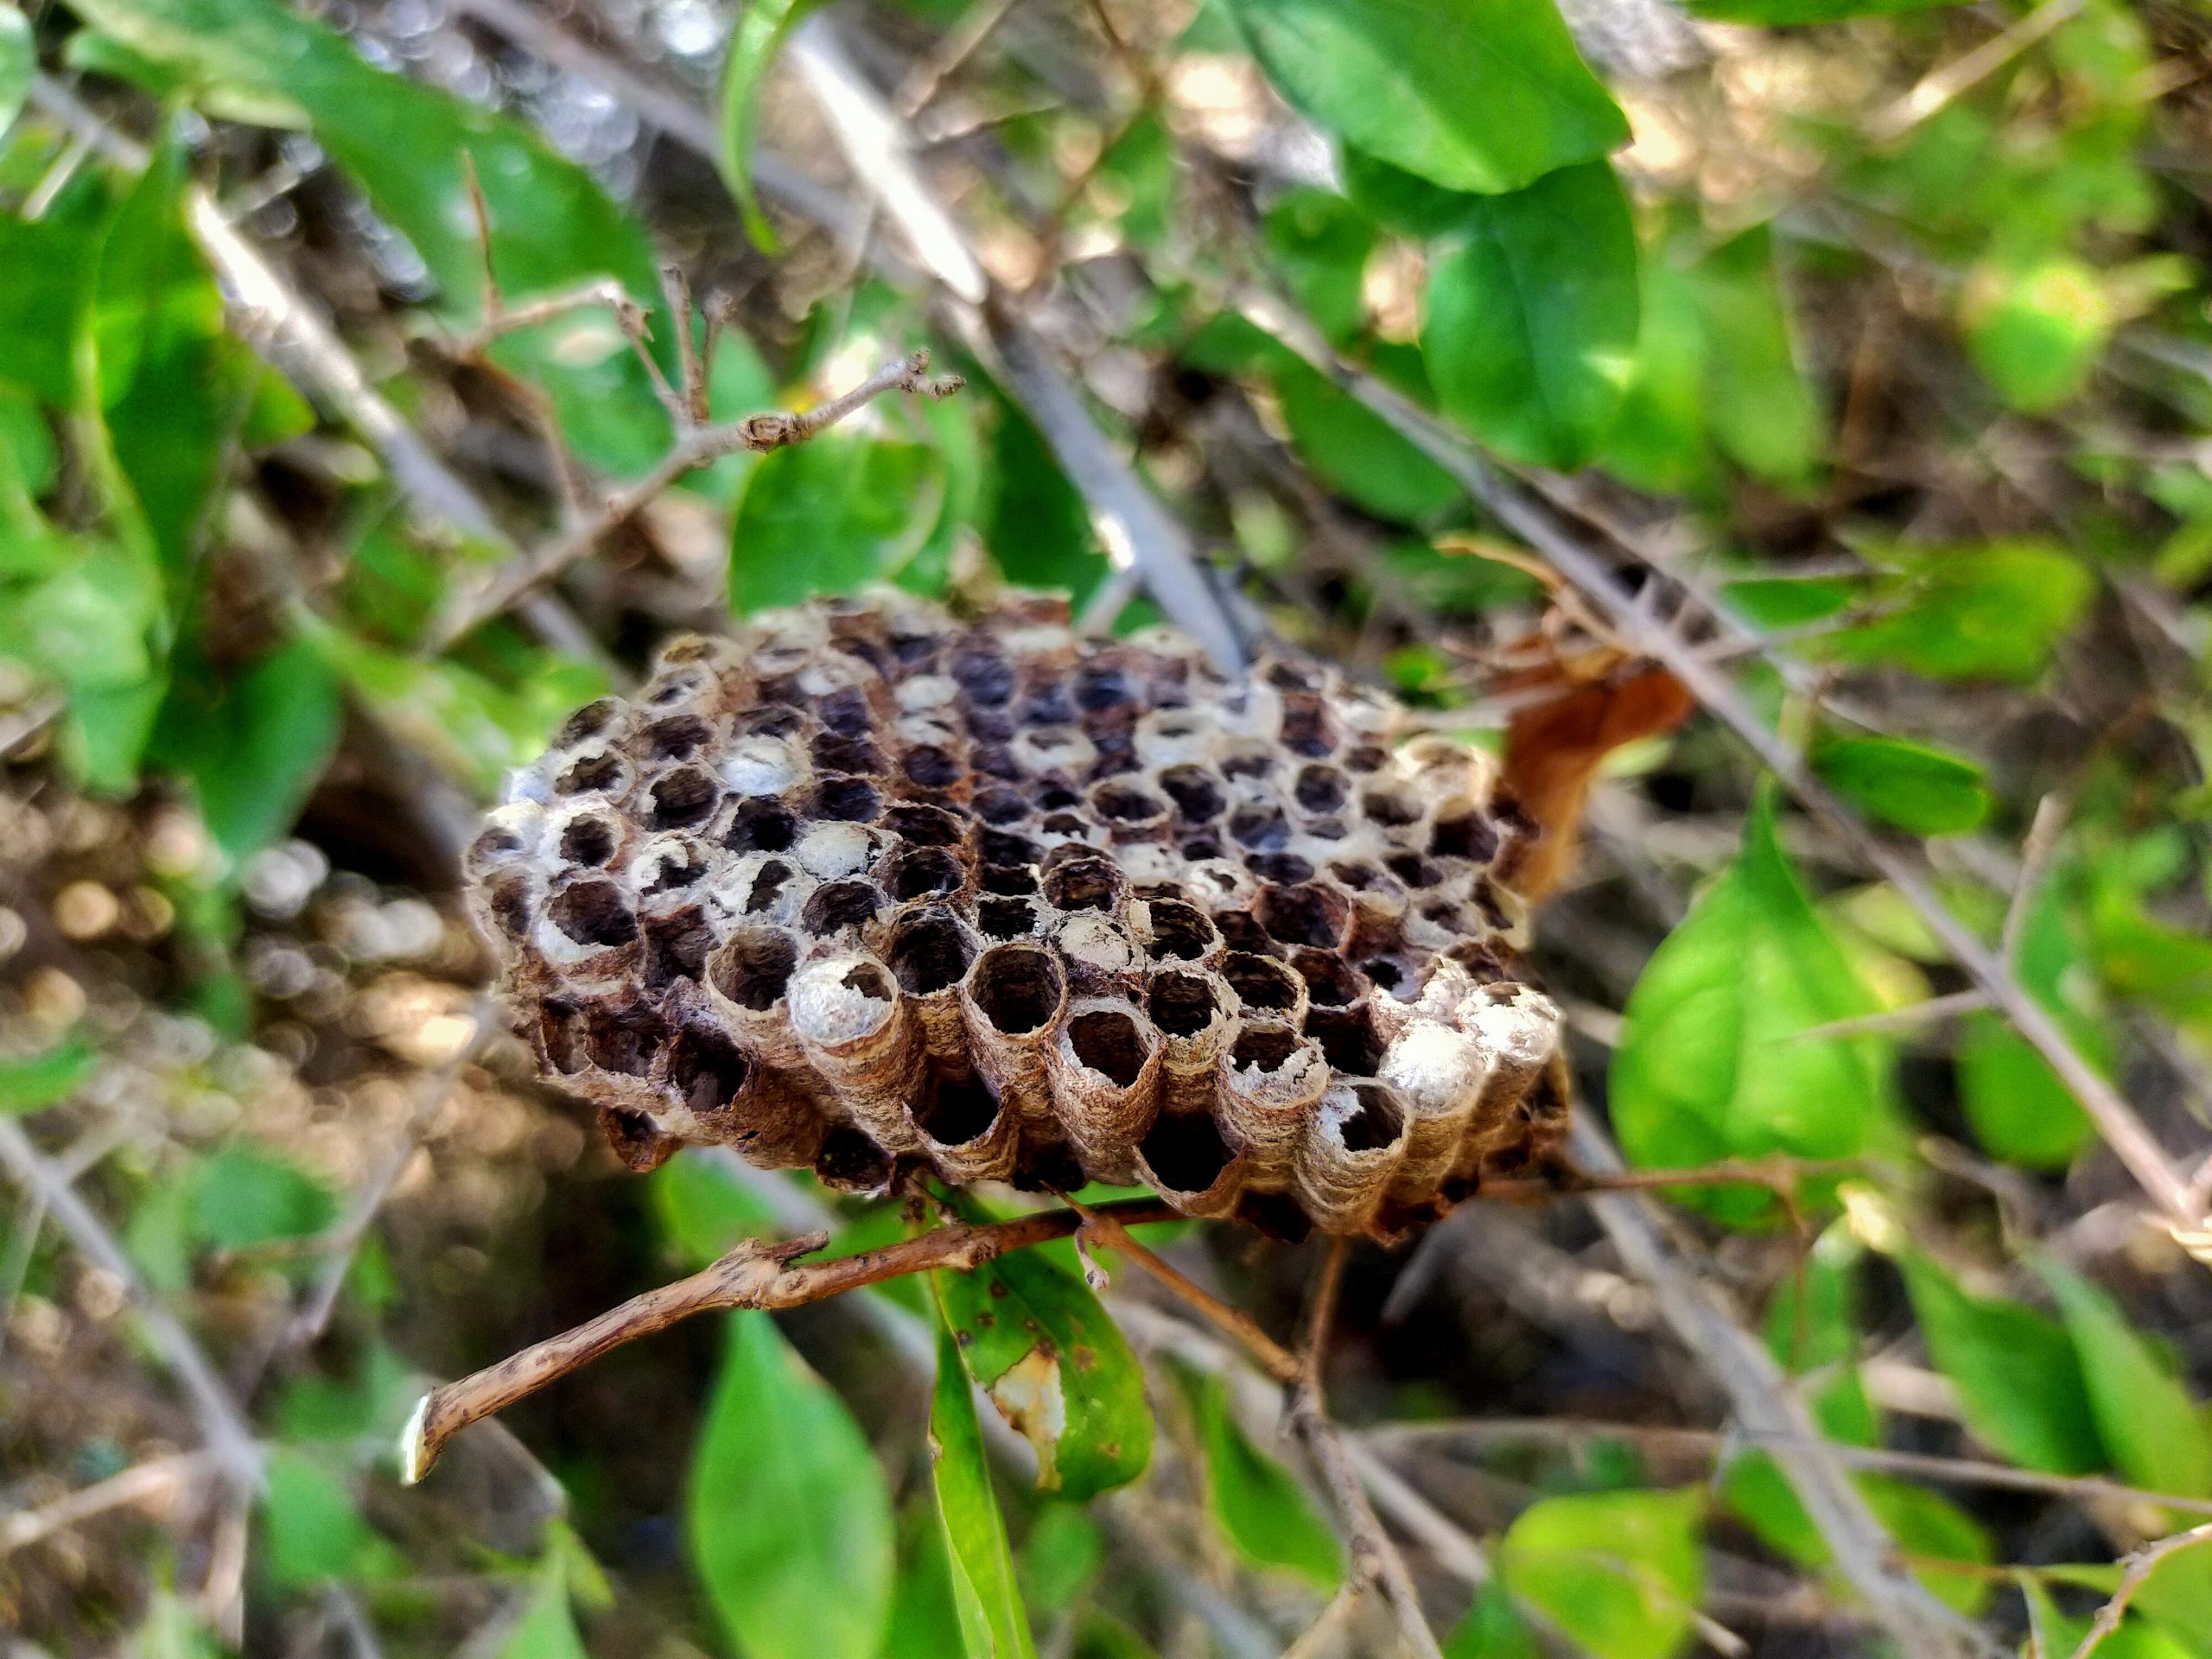 An insect nest on plant